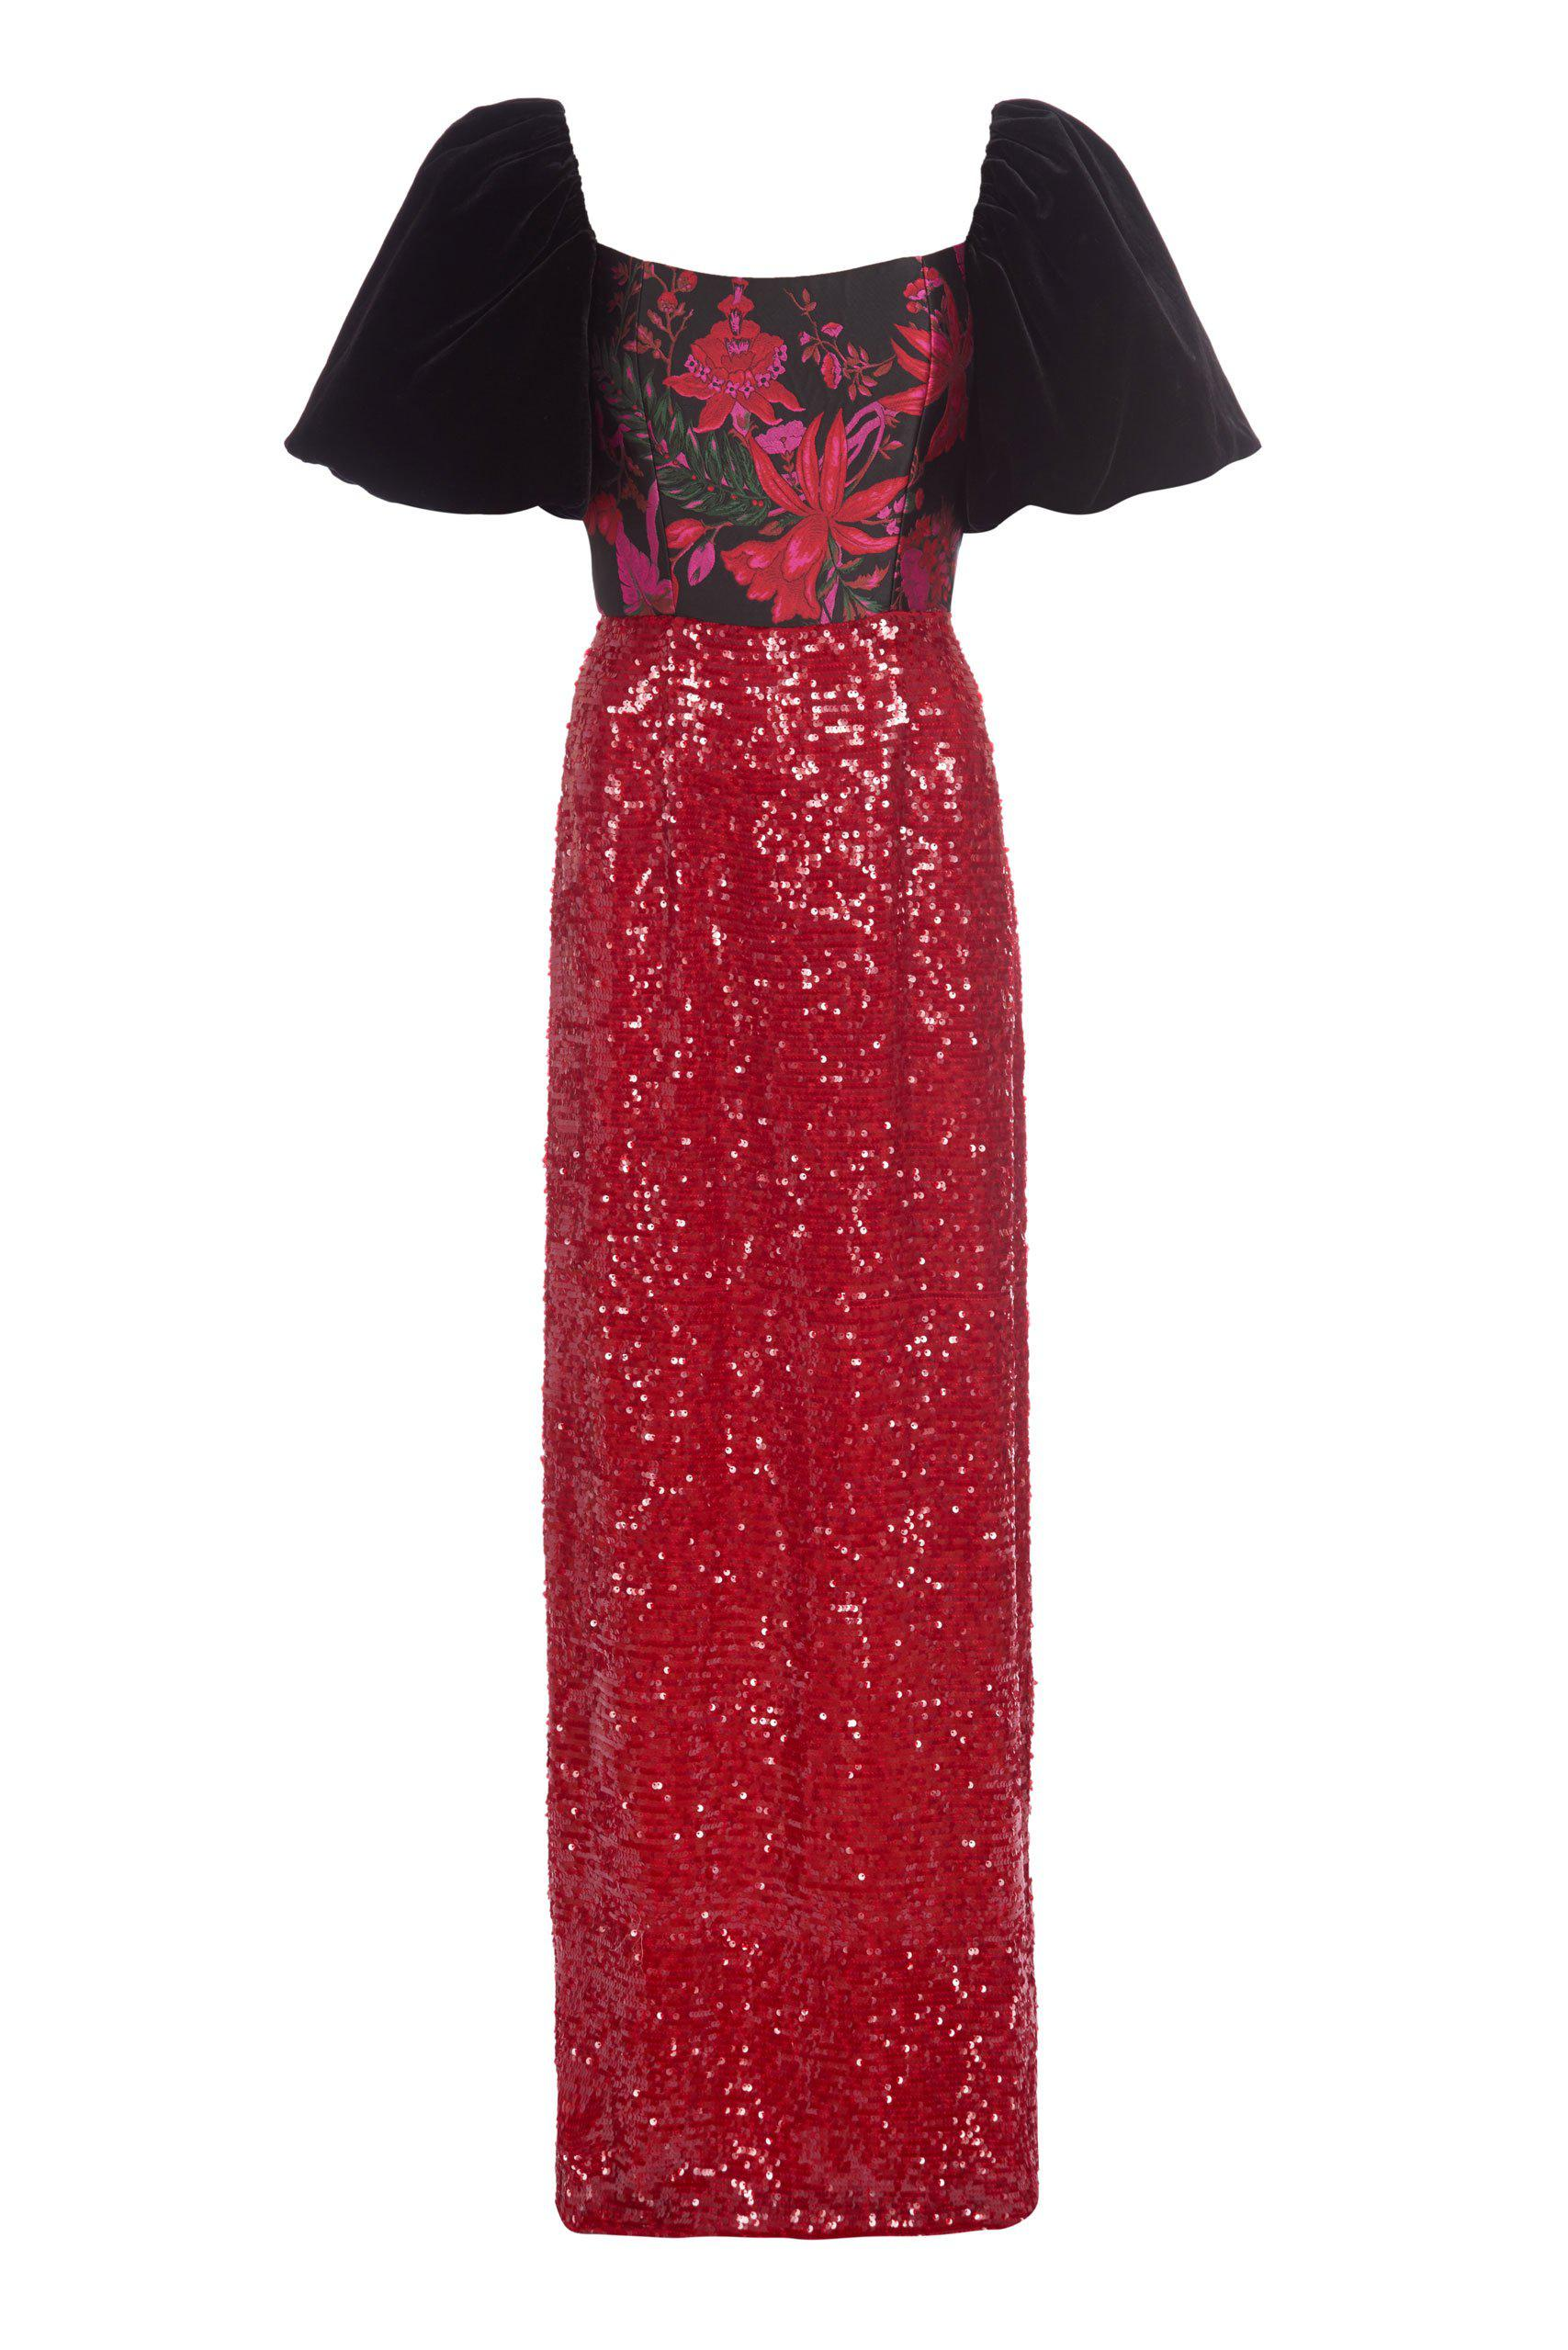 Marguerite Black Floral Brocade and Red Sequin Gown 1